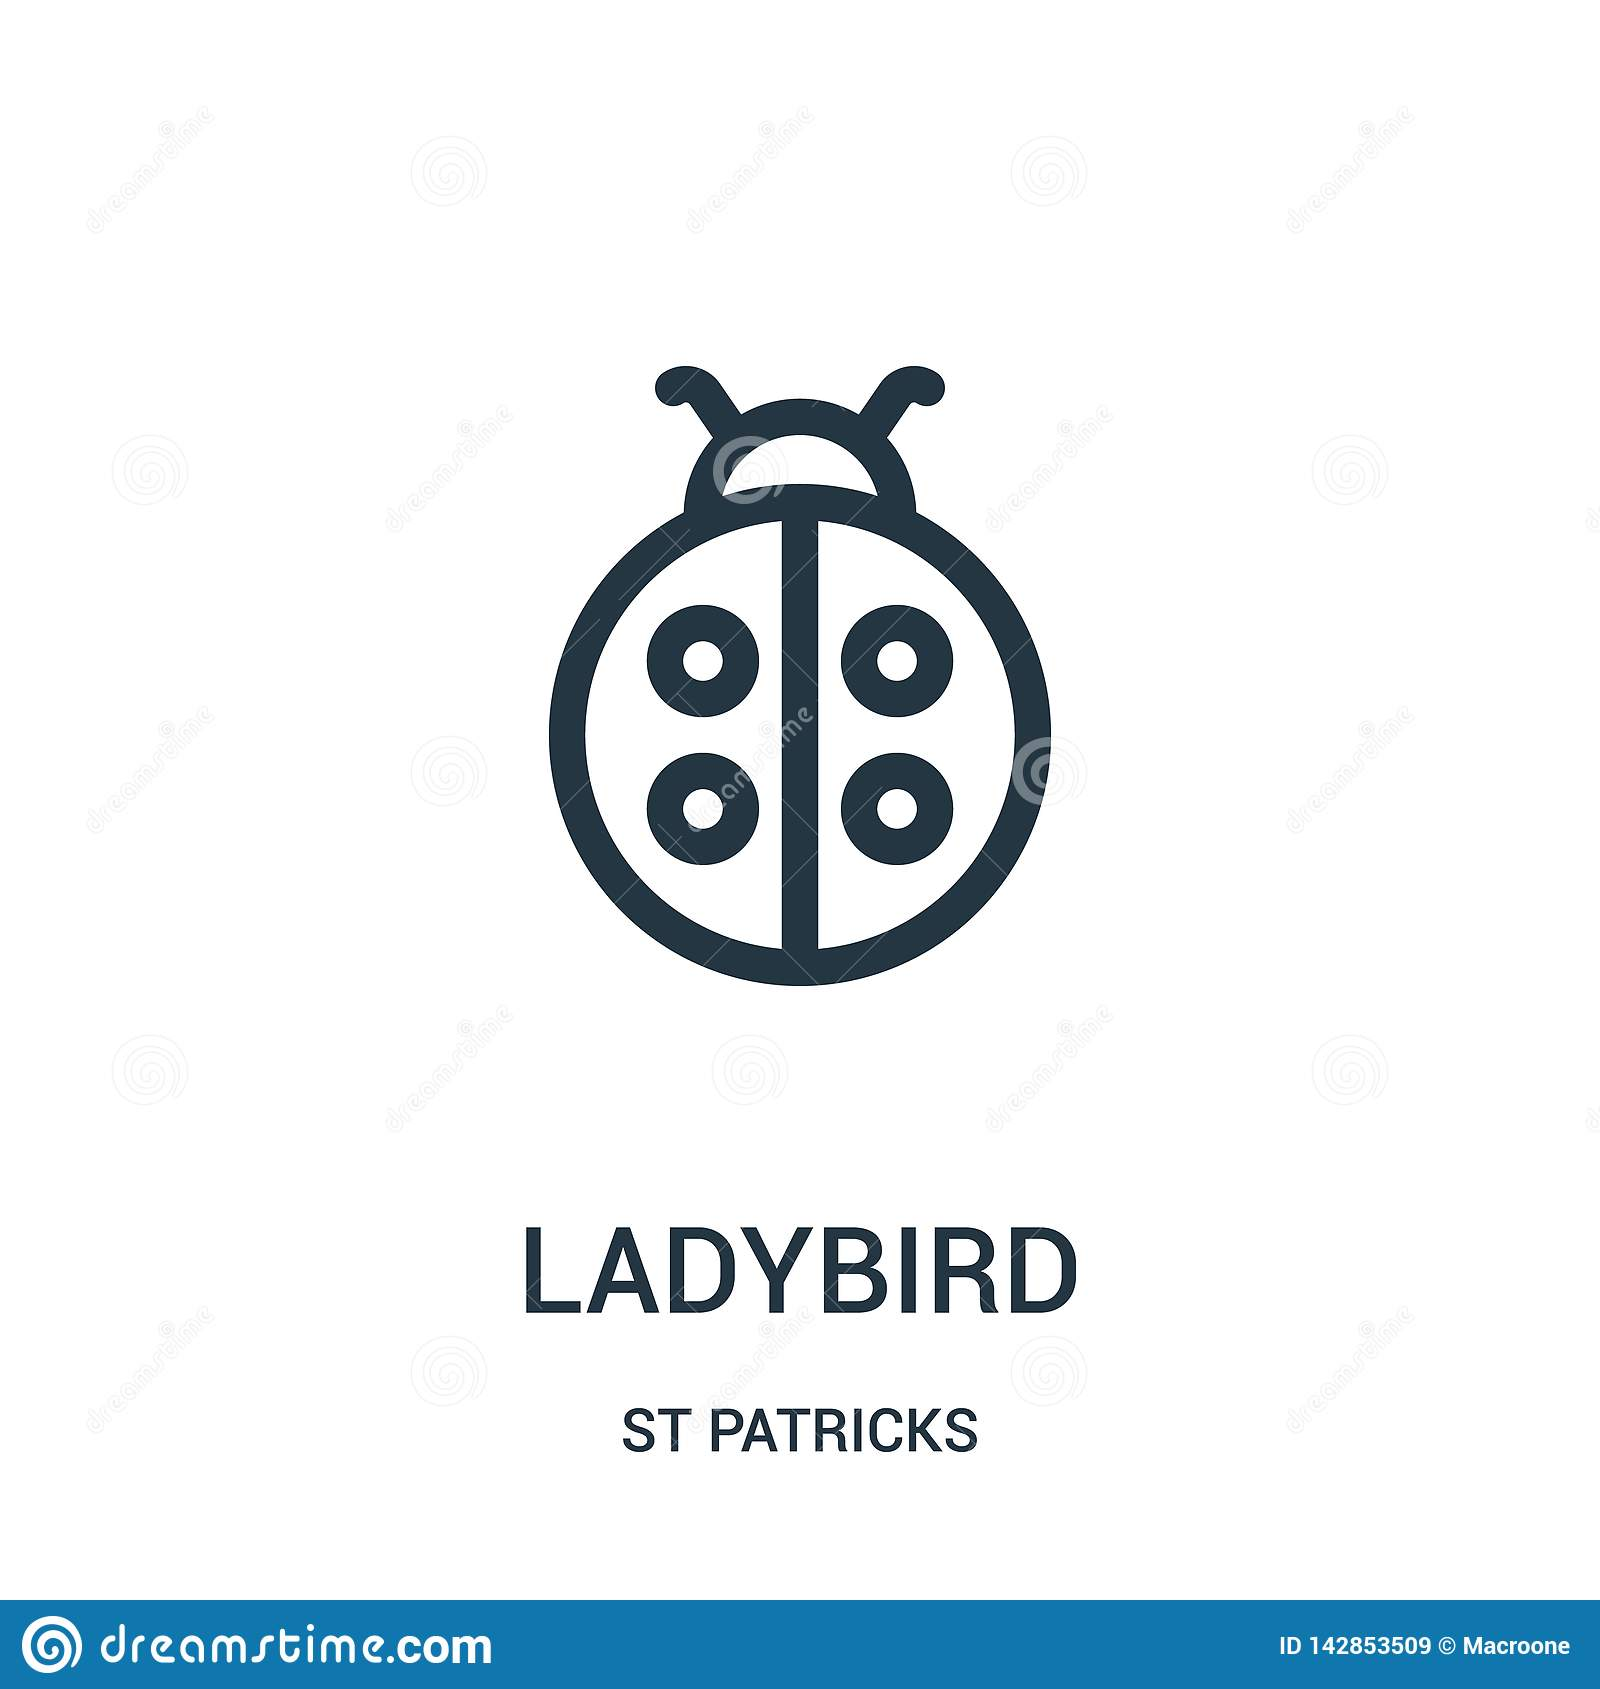 ladybird icon vector from st patricks collection. Thin line ladybird outline icon vector illustration. Linear symbol for use on